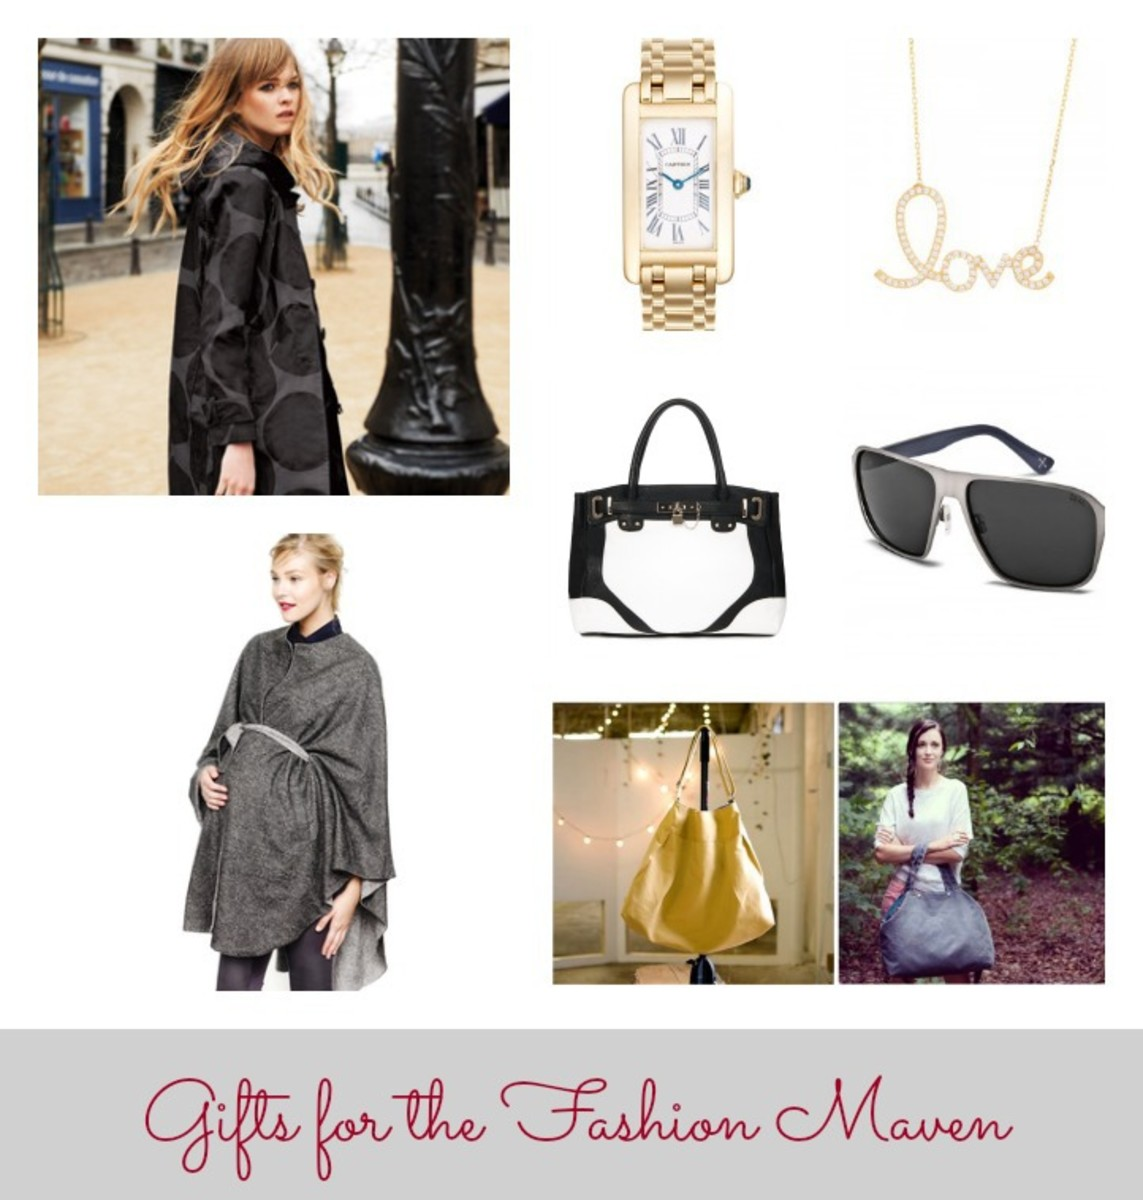 Fashion Maven Gifts